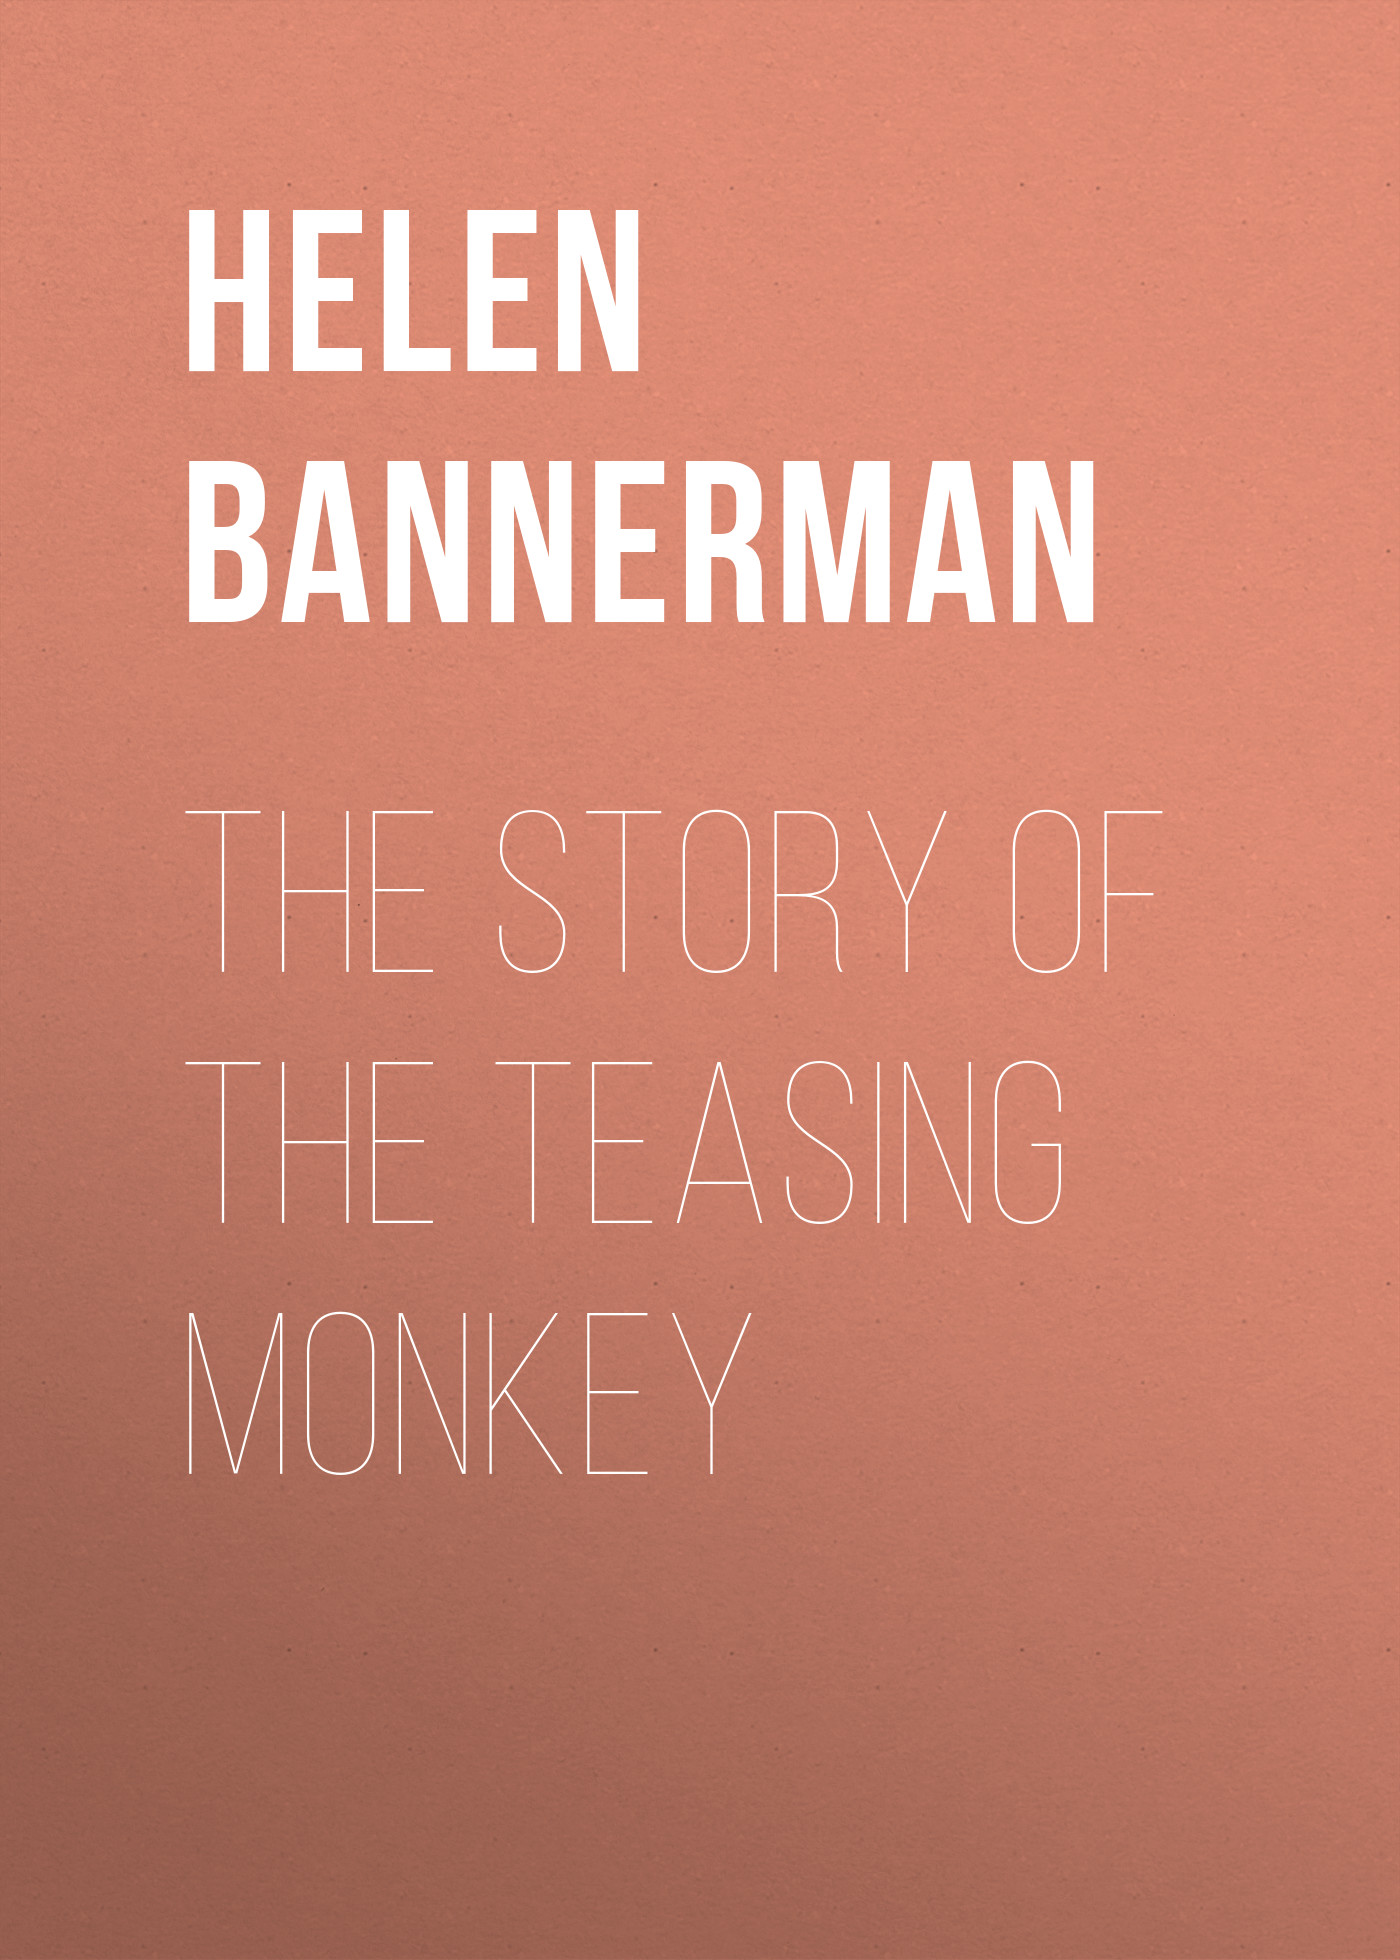 Bannerman Helen The Story of the Teasing Monkey толстовка wearcraft premium унисекс printio michael jackson